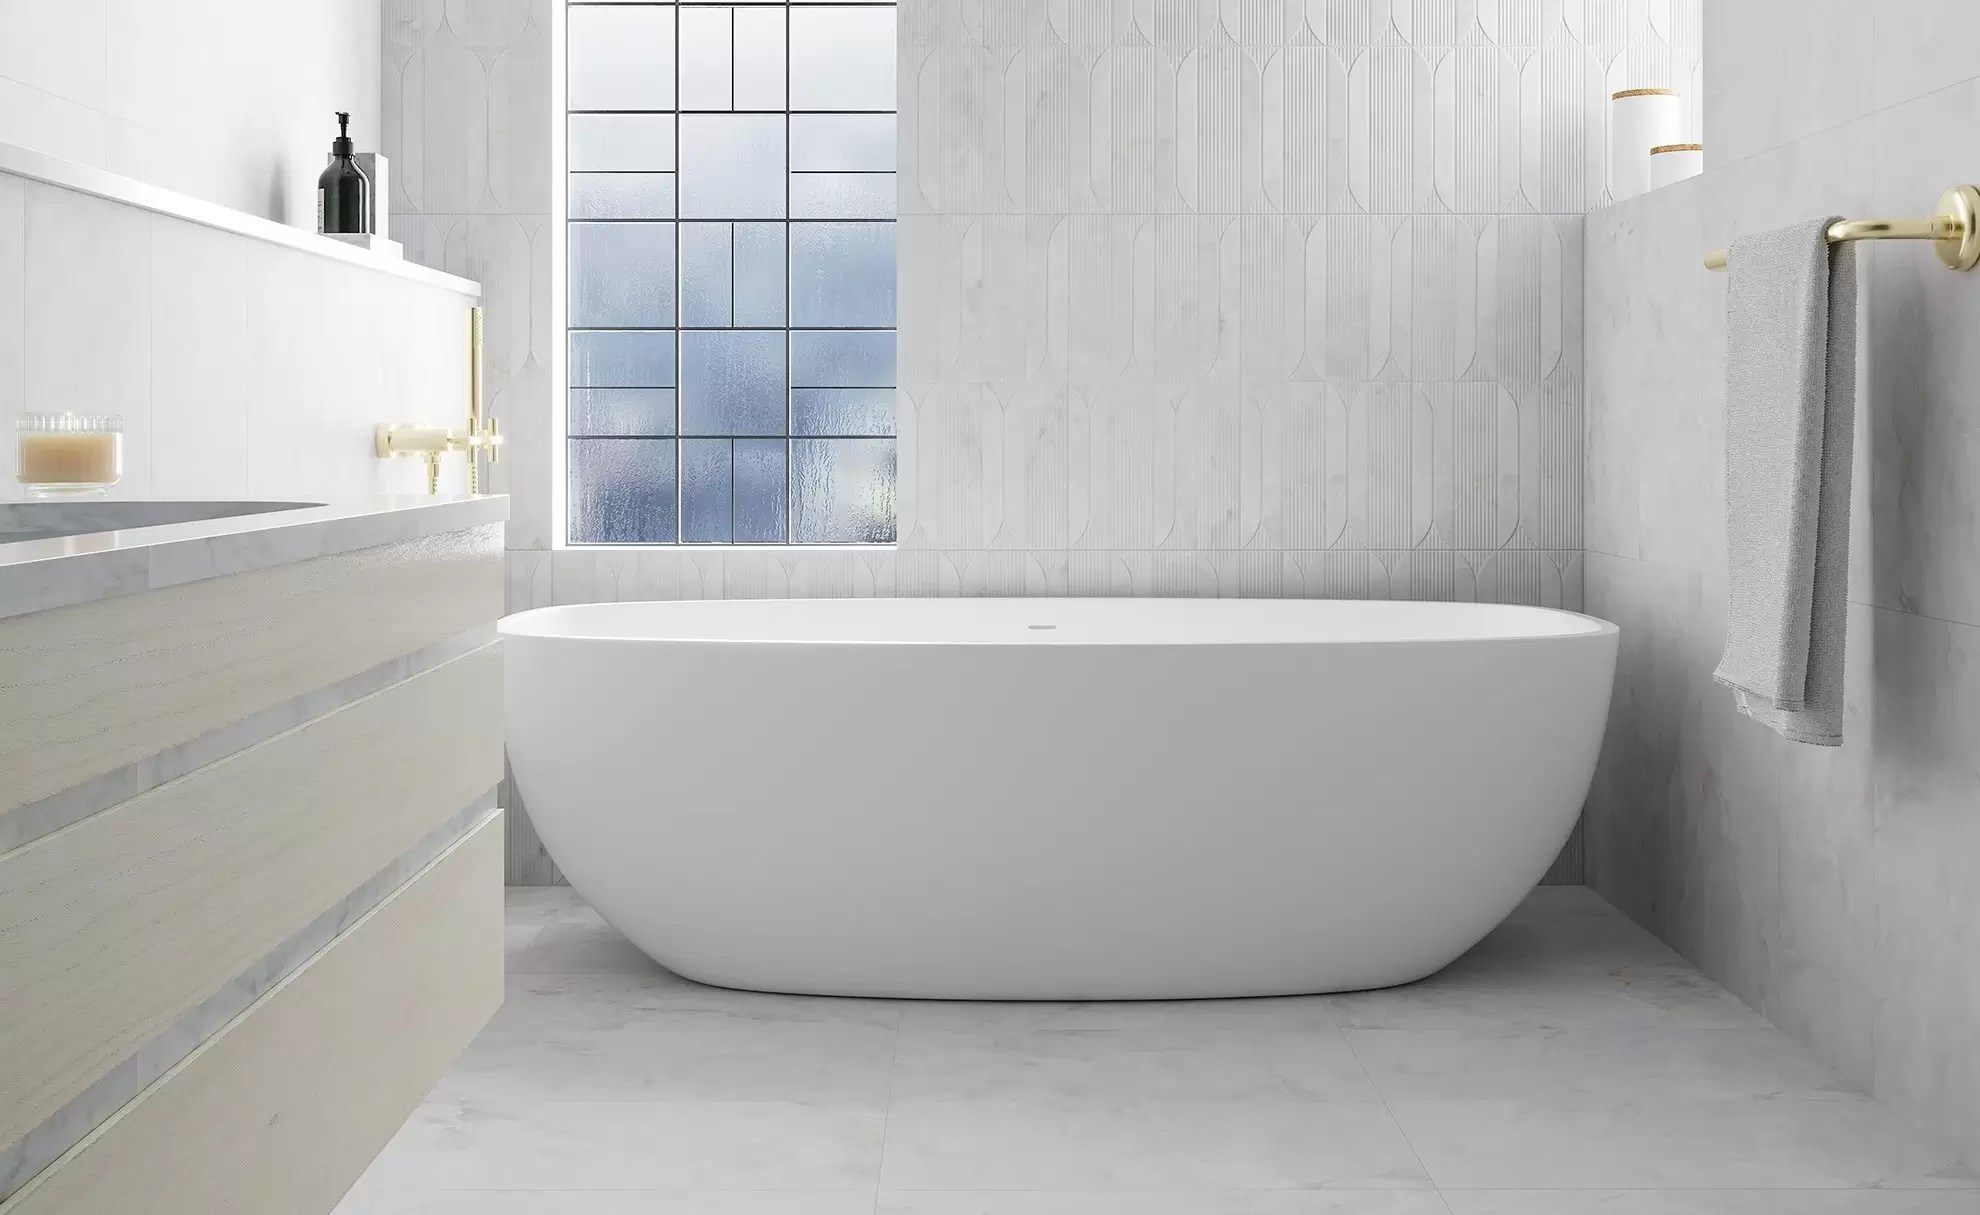 off white porcelain tiles a trend in